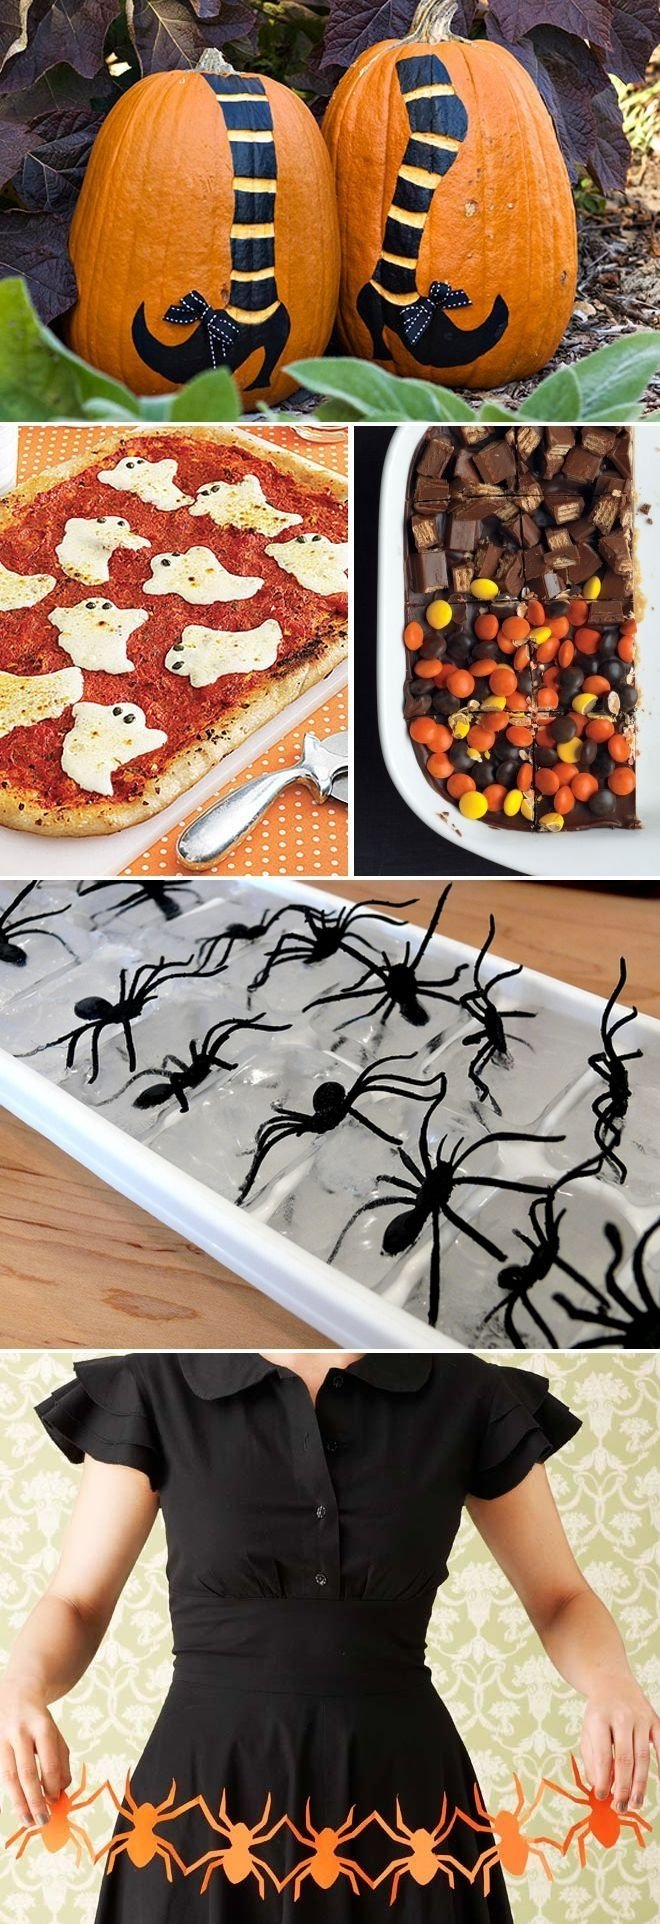 10 Trendy Halloween Party Ideas For Adults 629 best halloween party ideas images on pinterest halloween prop 2